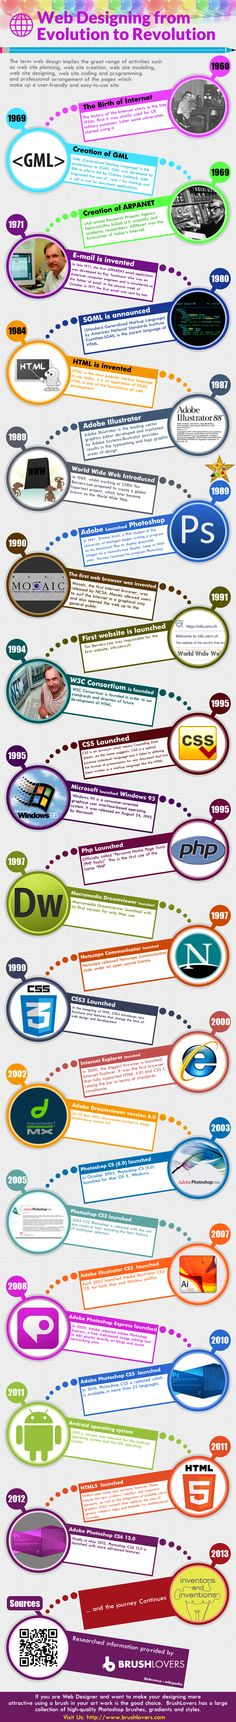 Web designing from evolution to revolution #infographic #web #internet